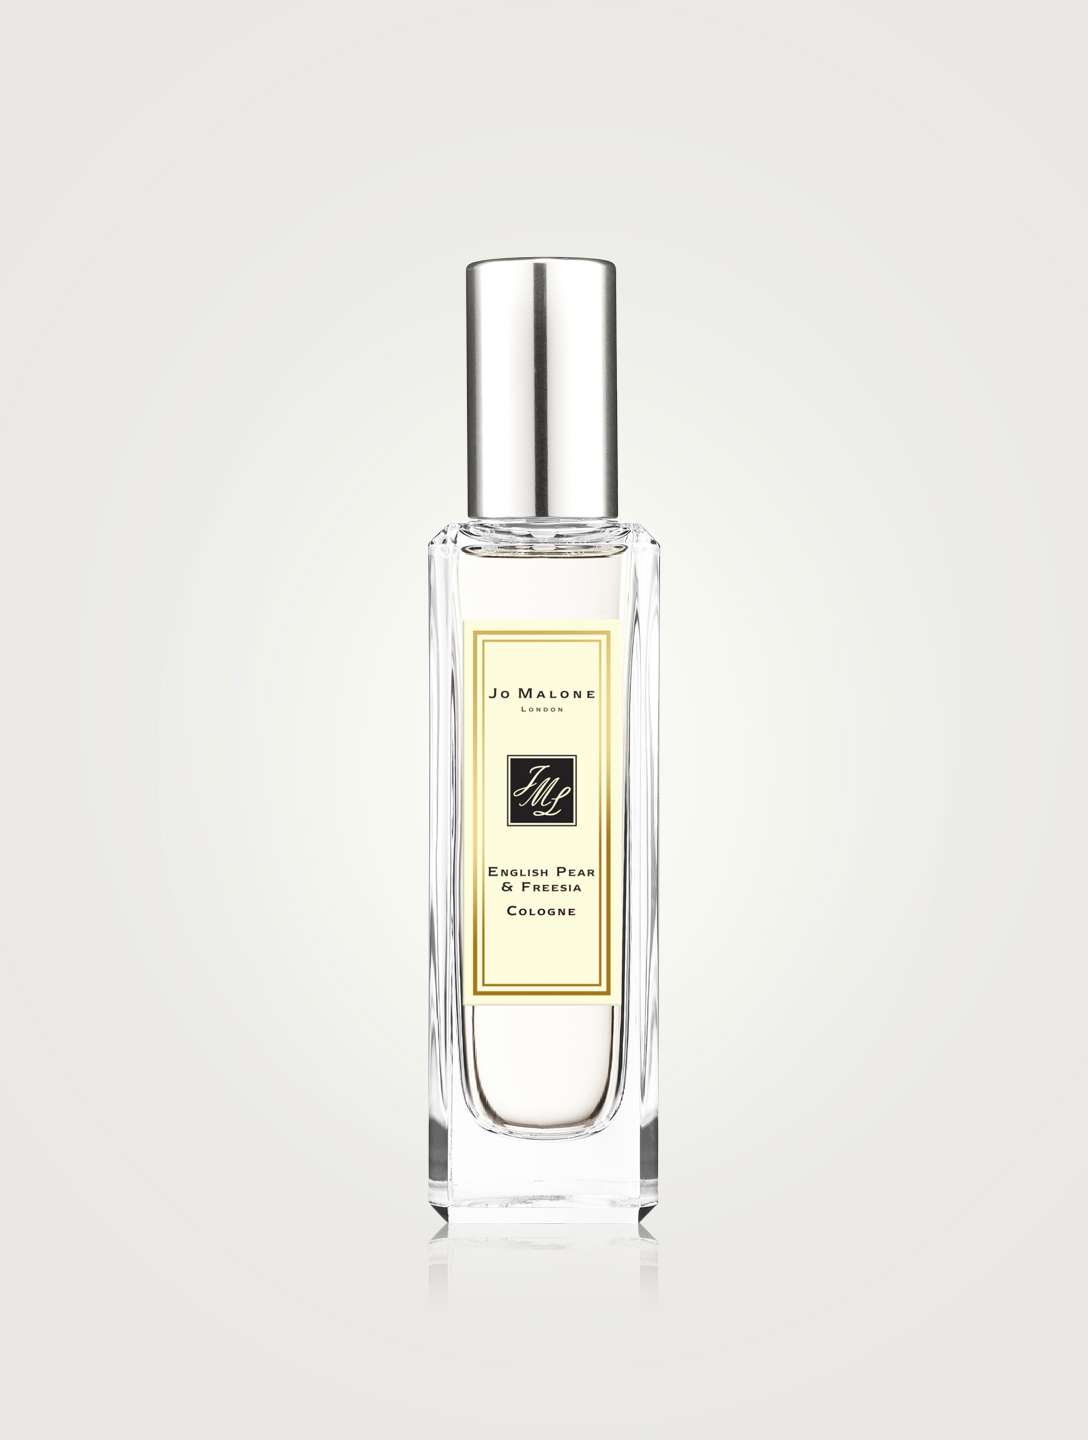 JO MALONE LONDON English Pear & Freesia Cologne Collections